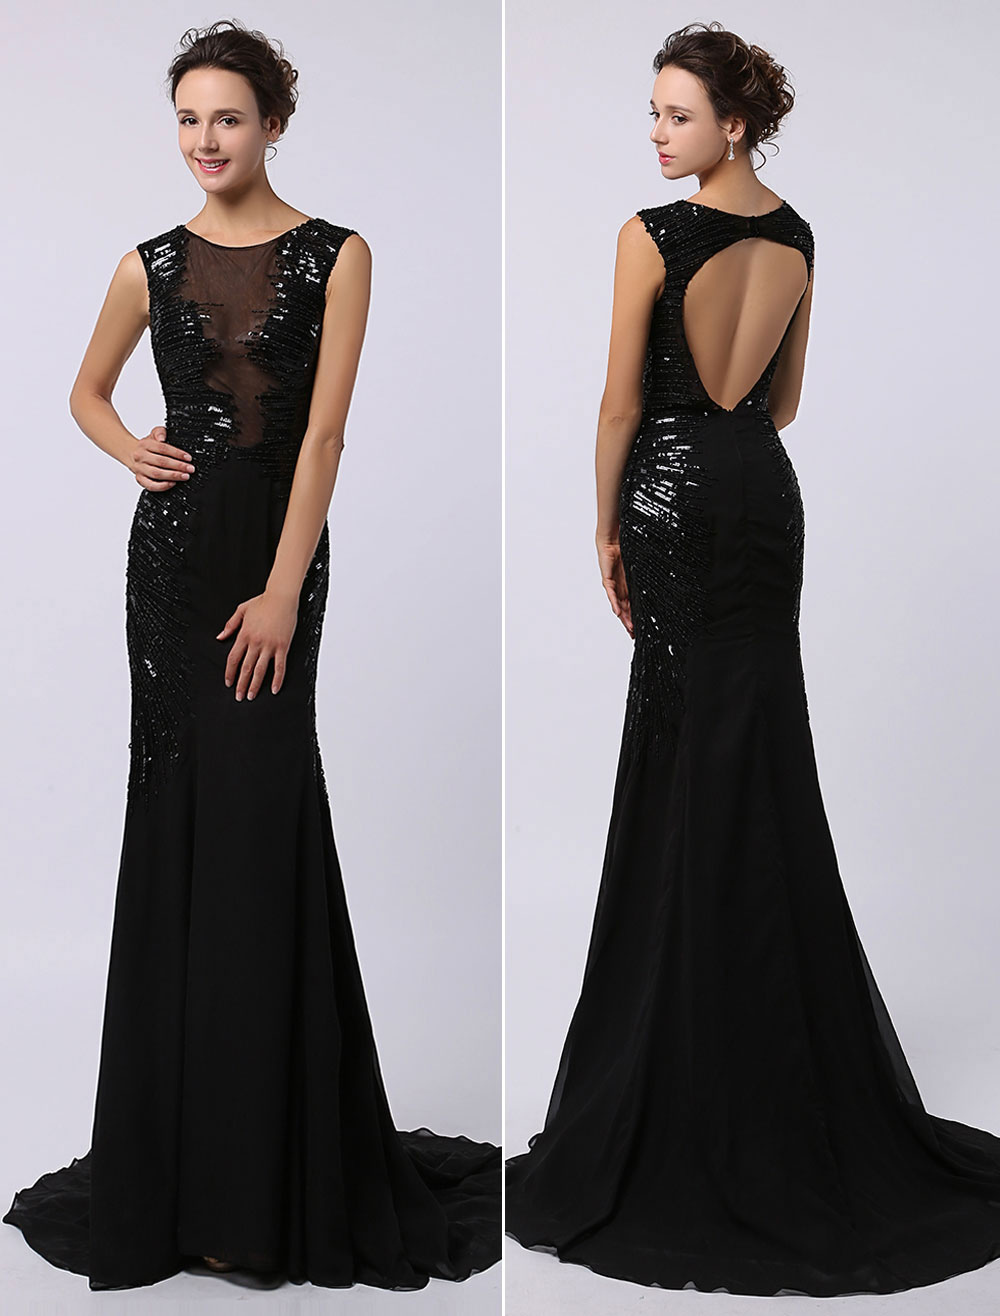 Black Sequined Dress with Look Through Bodice Keyhole Back and subtle Train Milanoo